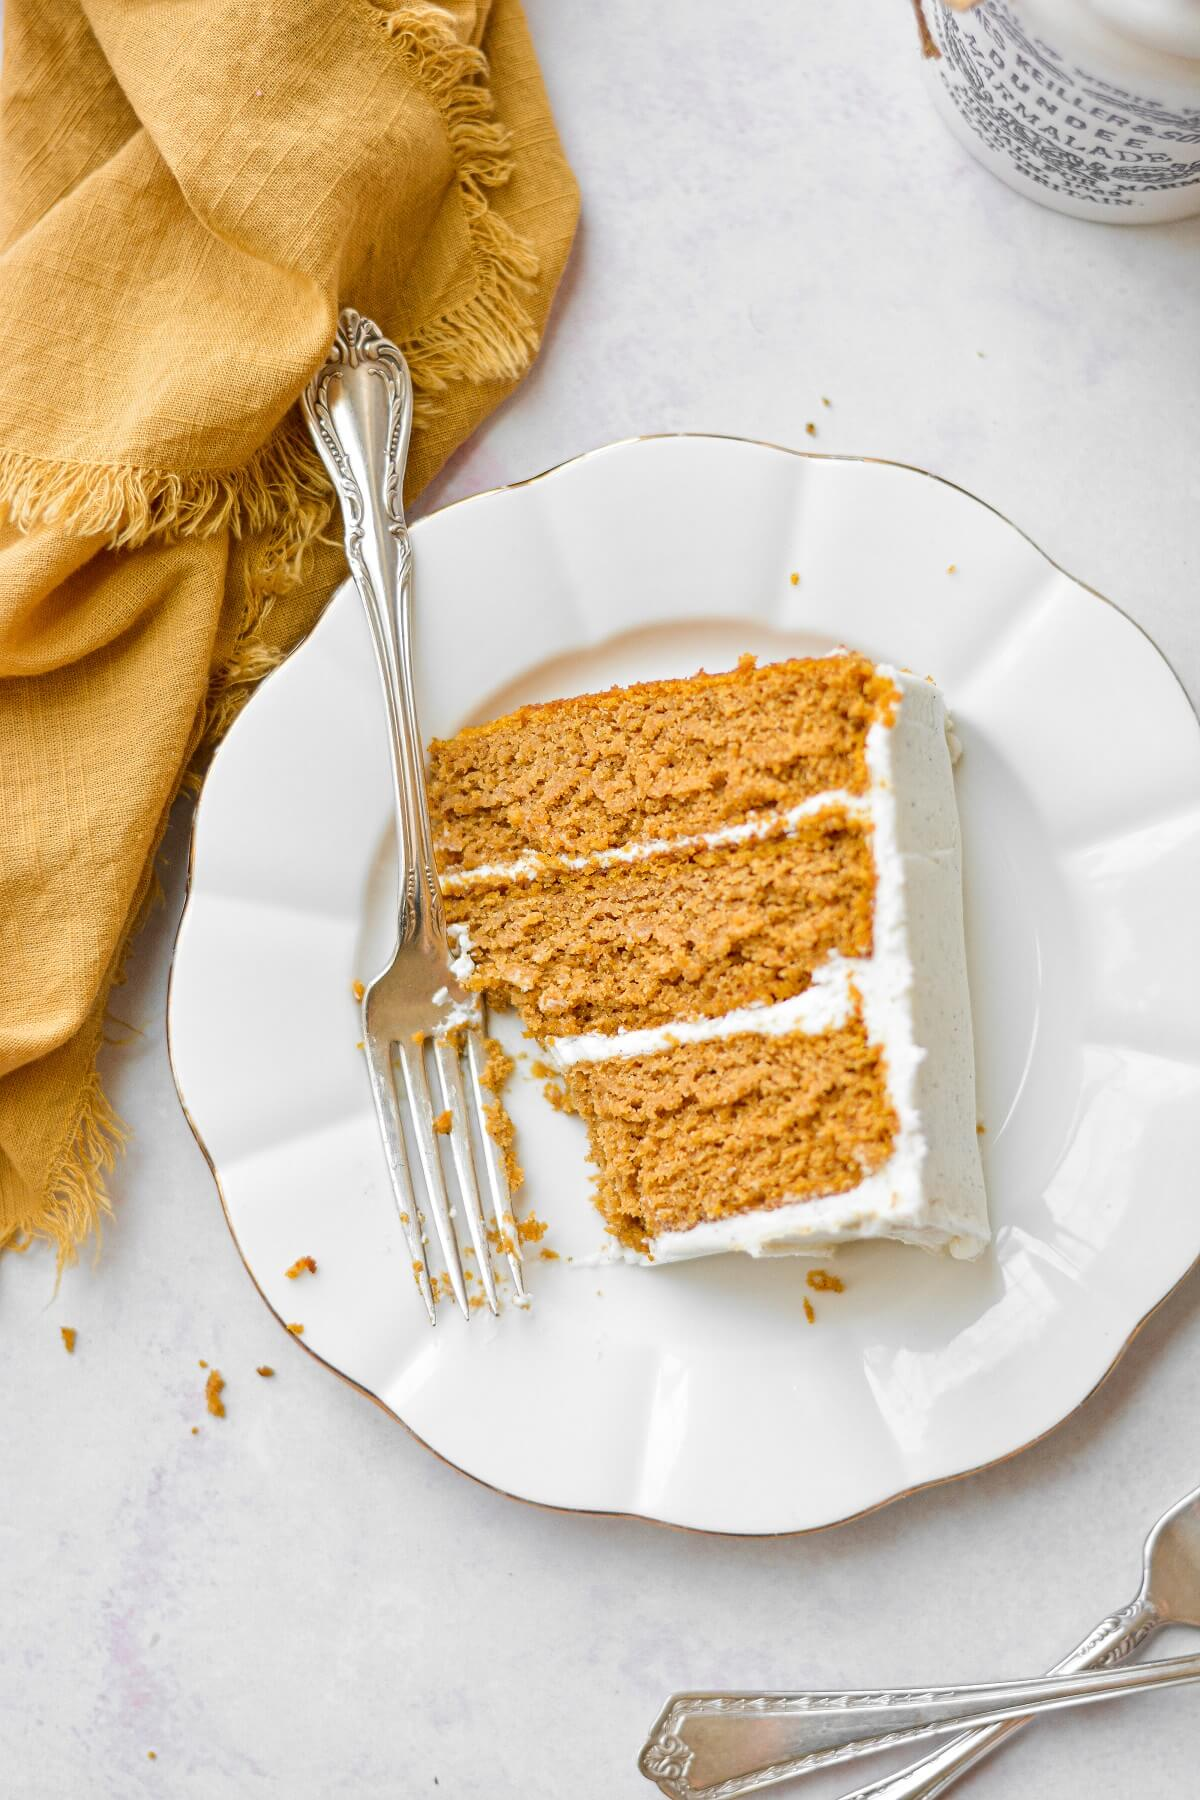 Overhead shot of a slice of pumpkin cake on a white plate, with a vintage silver fork, next to a yellow linen napkin.